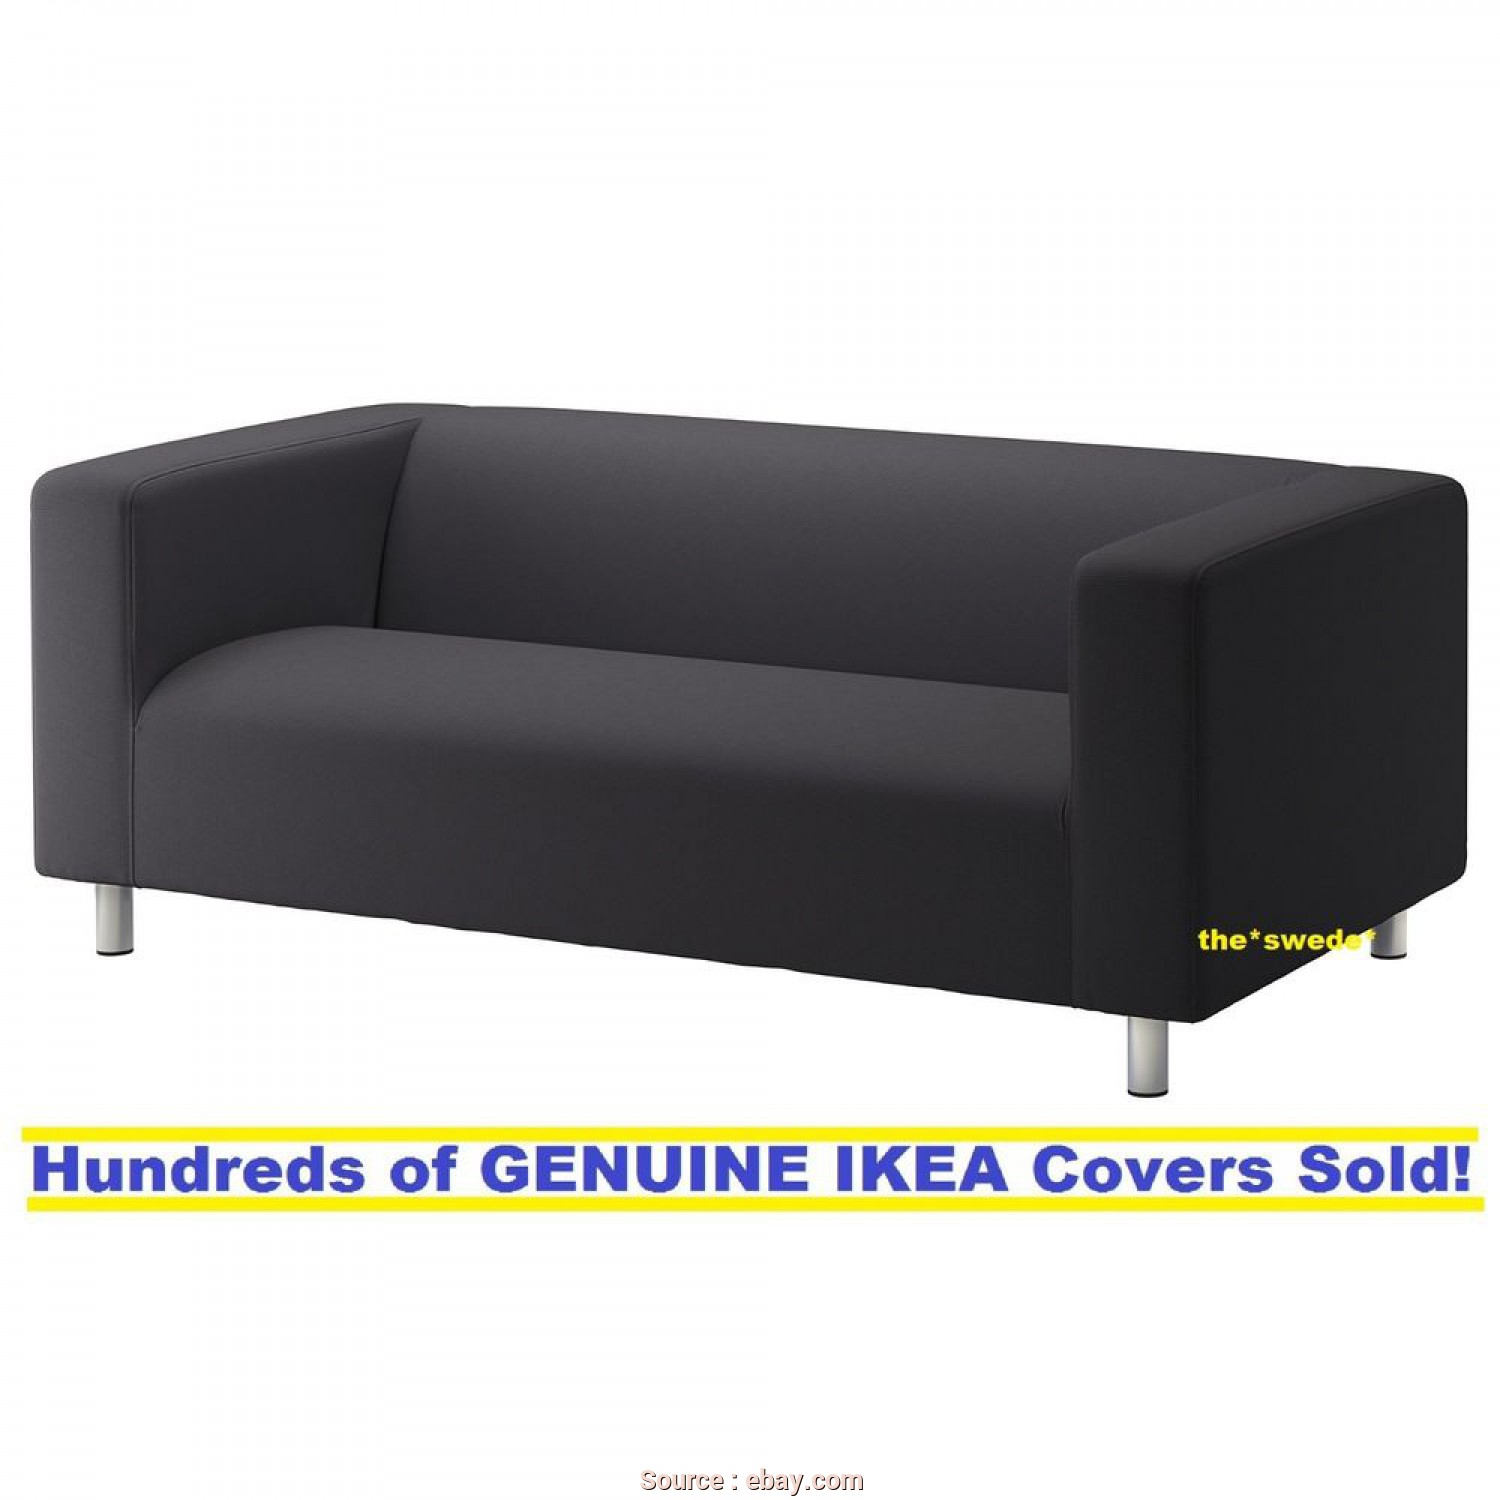 Ikea Klippan 3 Seater Sofa Covers, Amabile Details About ...